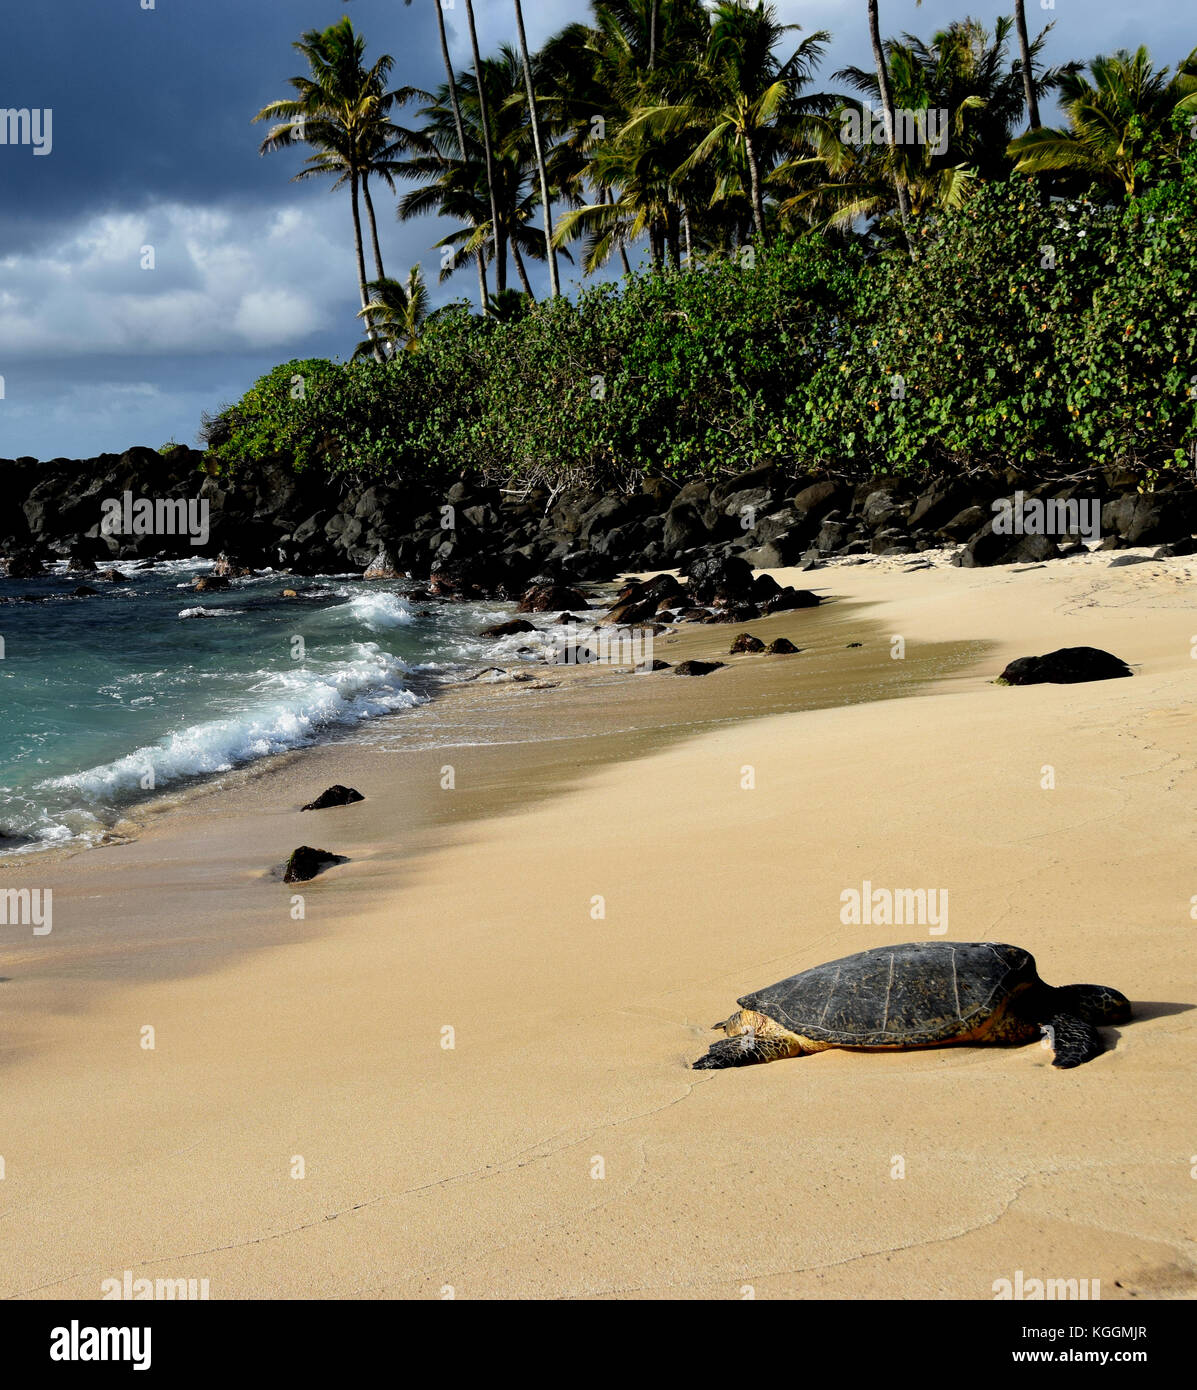 Hawaiian Sea Turtles - Laniakea Beach, Oahu, Hawaii - Stock Image